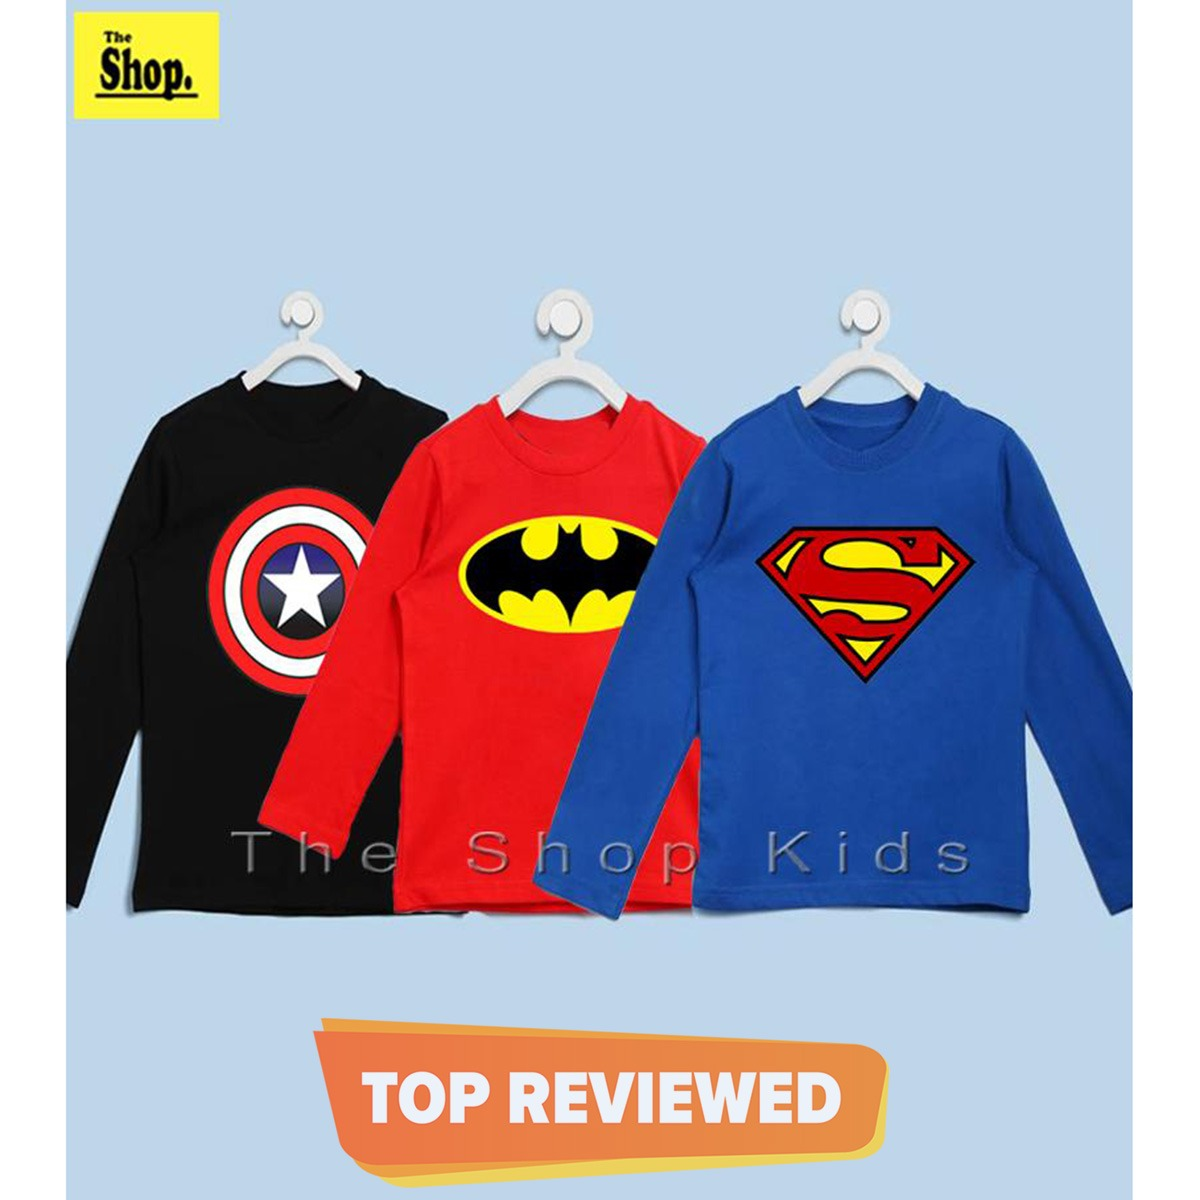 The Shop - Pack Of 3 - Super Hero Full Sleeves T-Shirts For Kids - FS-SH3